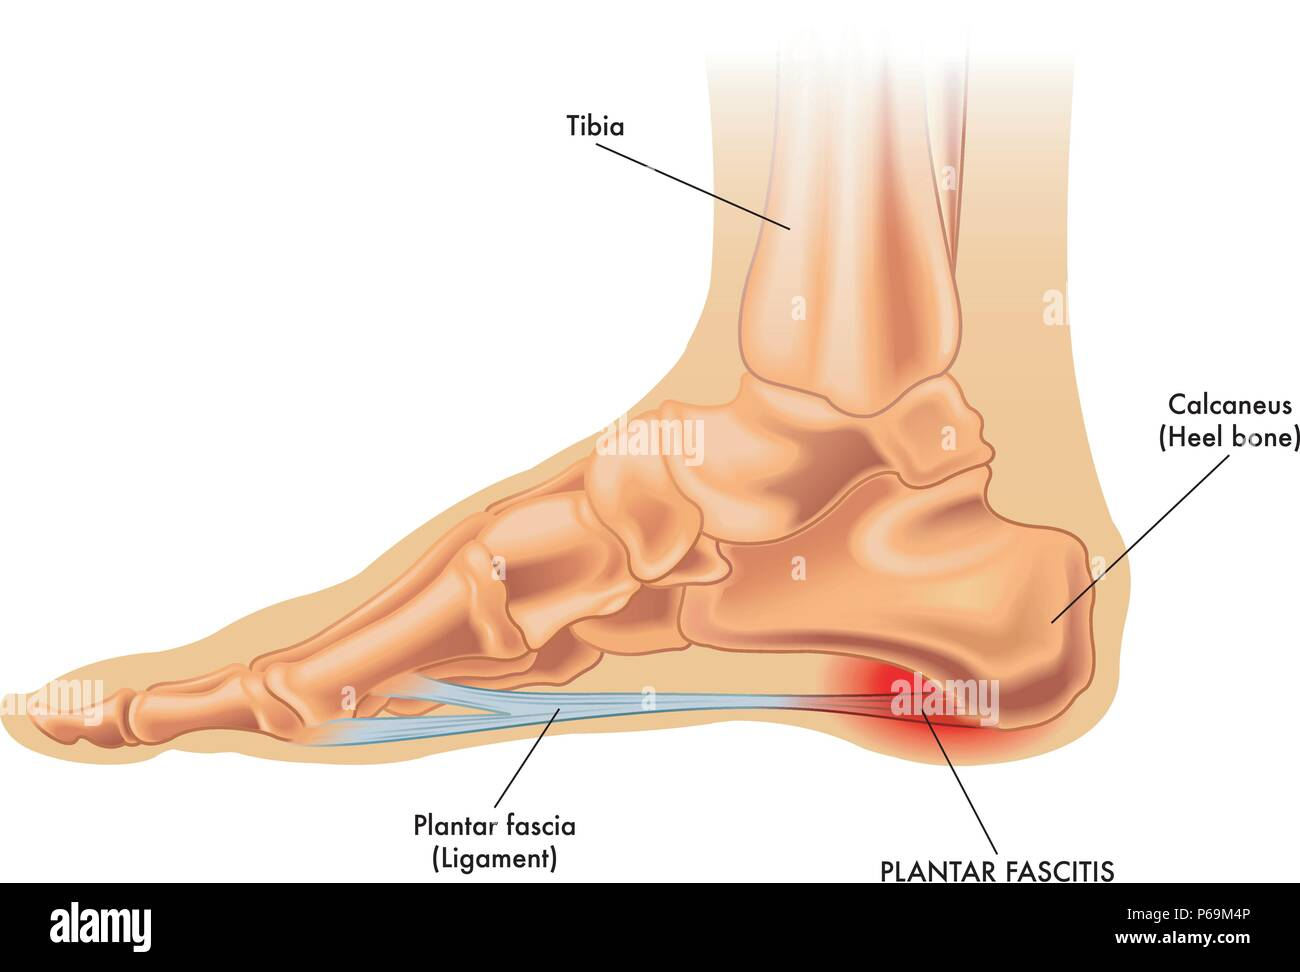 an vector medical illustration of the anatomy of a foot with the symptoms  of plantar fasciitis